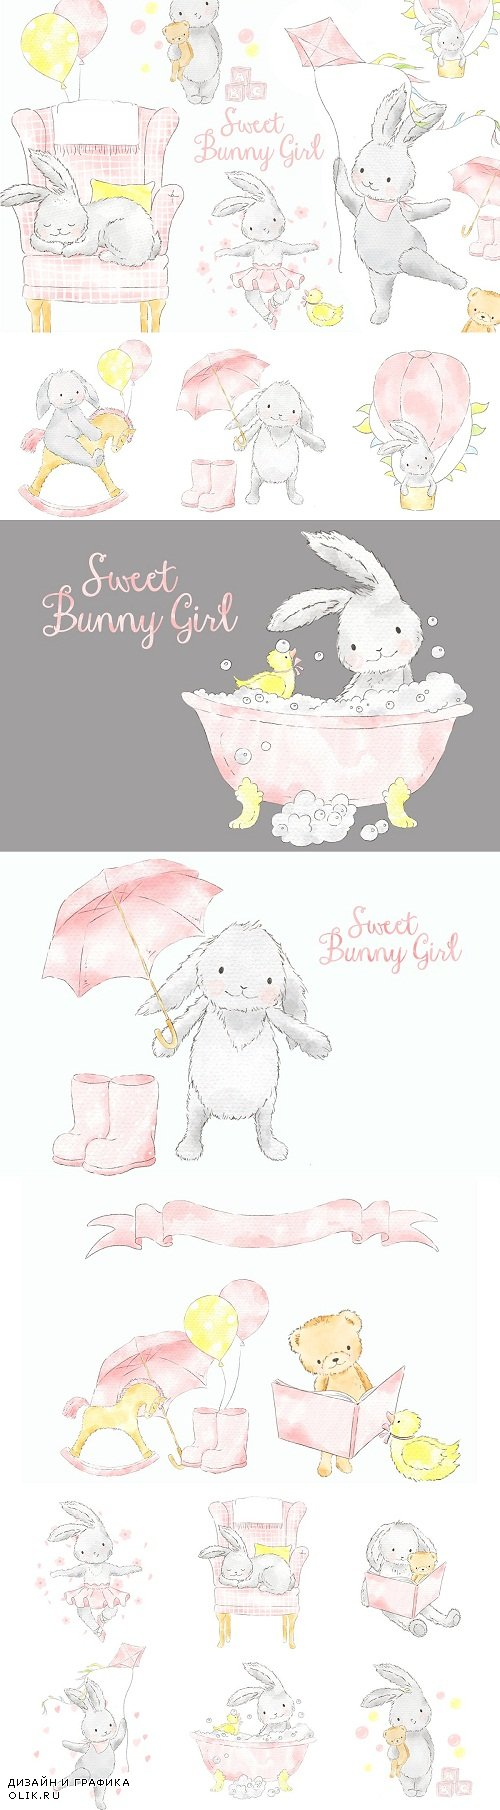 Sweet Bunny Girl watercolor clipart - 3712172